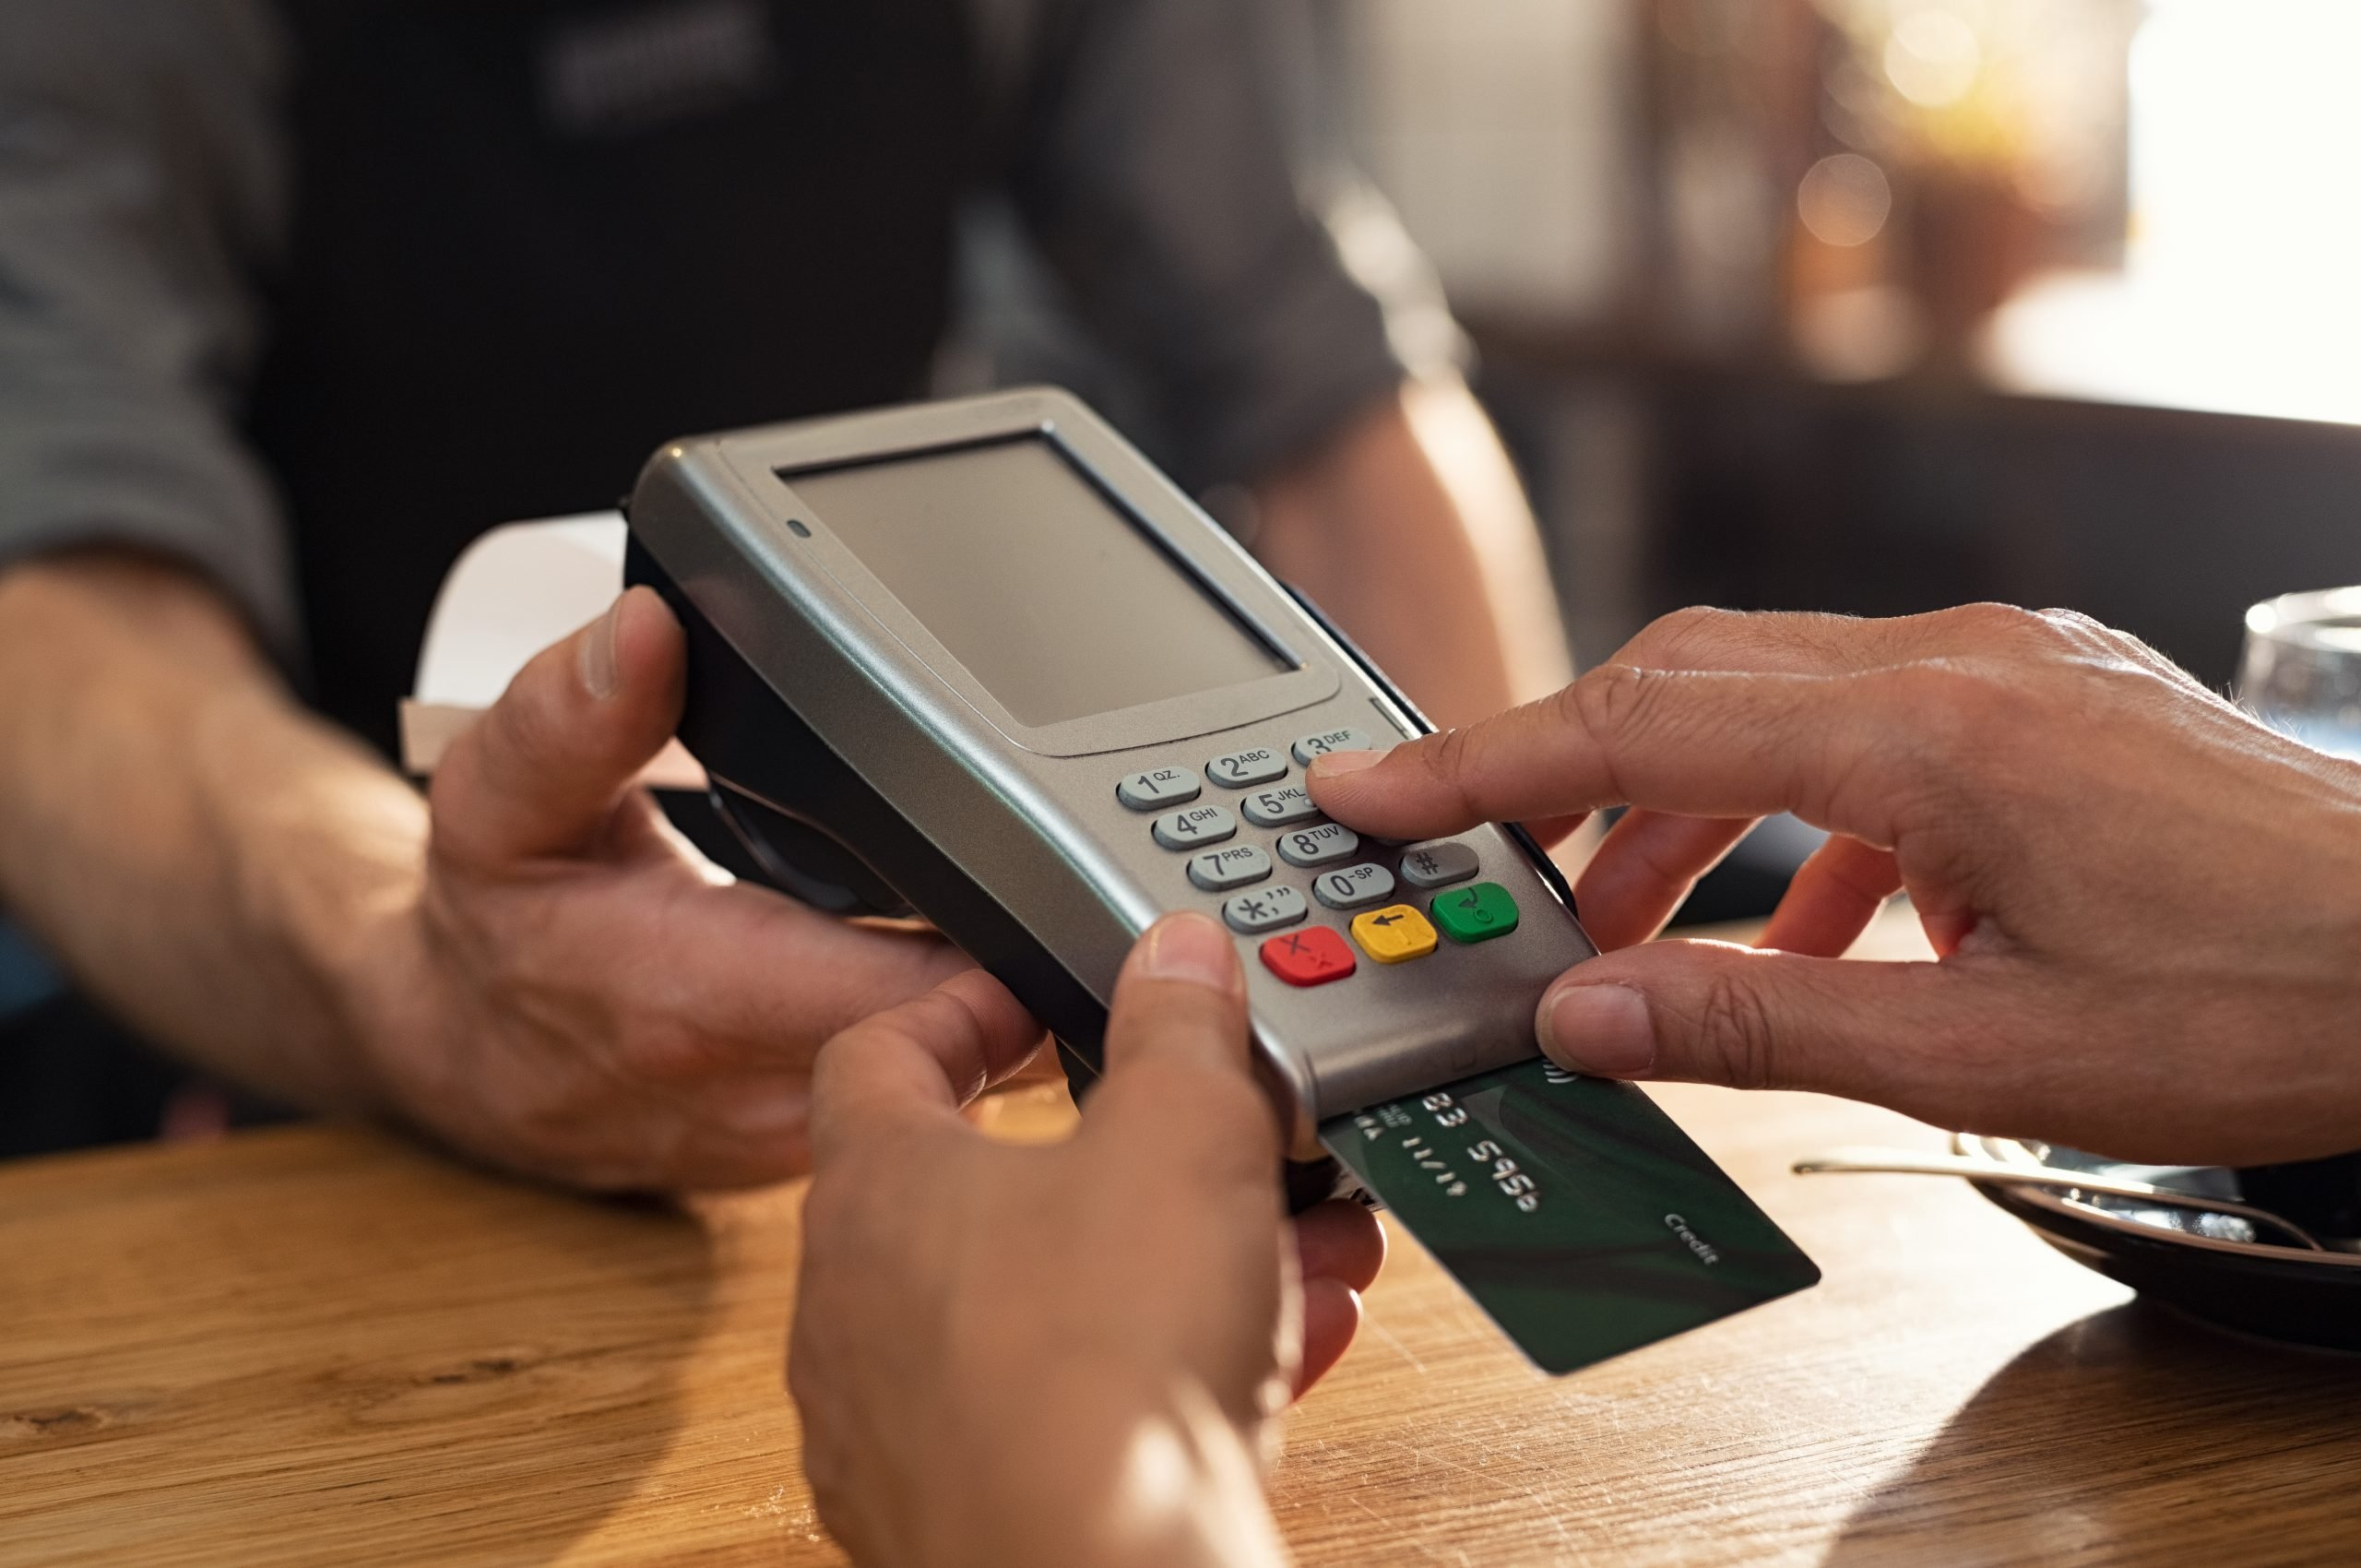 Customer typing in their PIN for a debit card payment